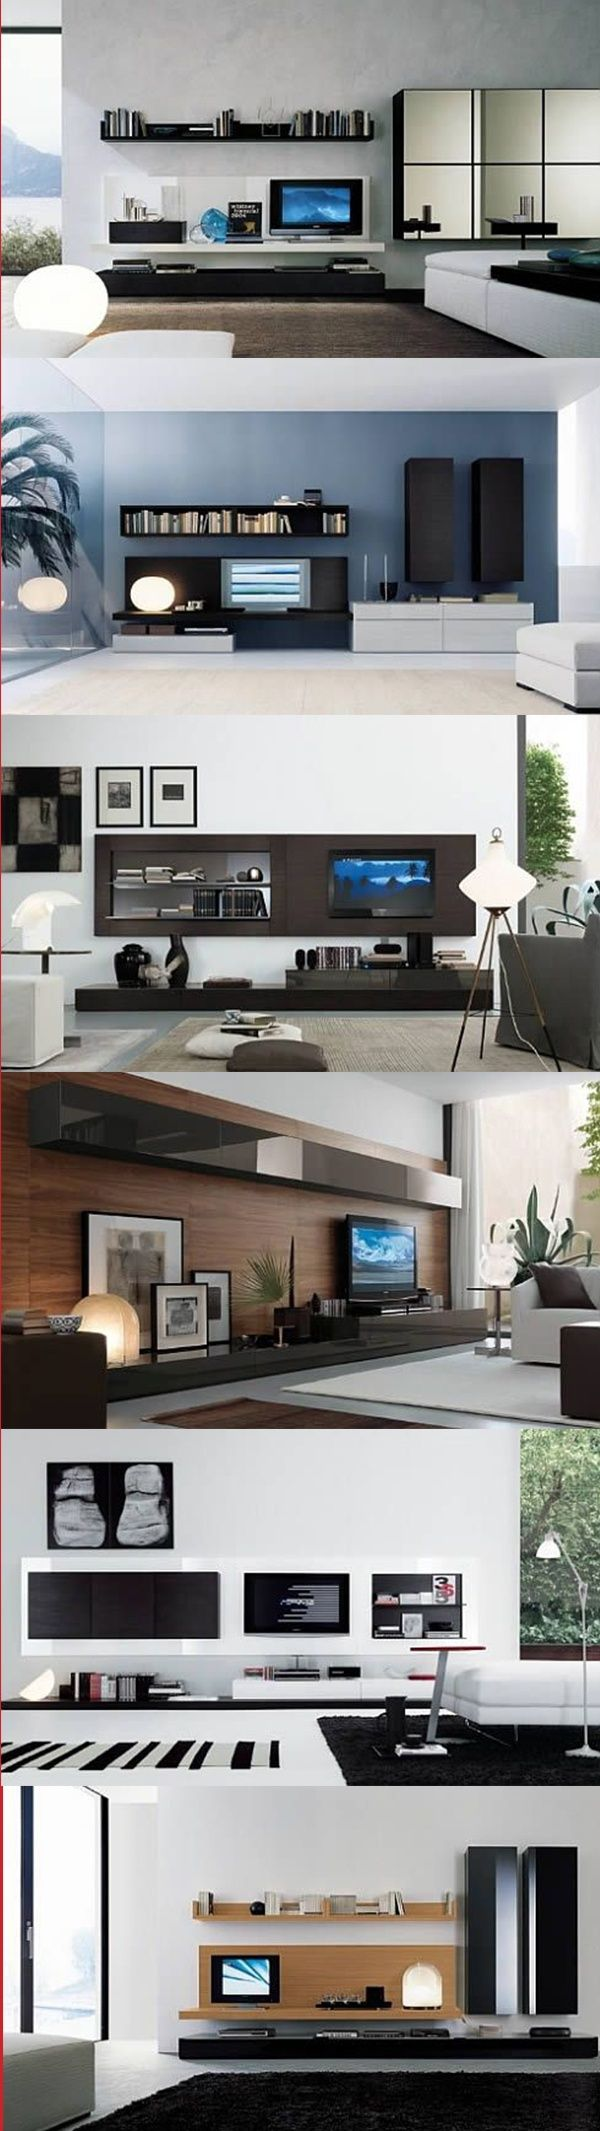 Tv Wall Units Design Ideas, Pictures, Remodel, and Decor - page 11